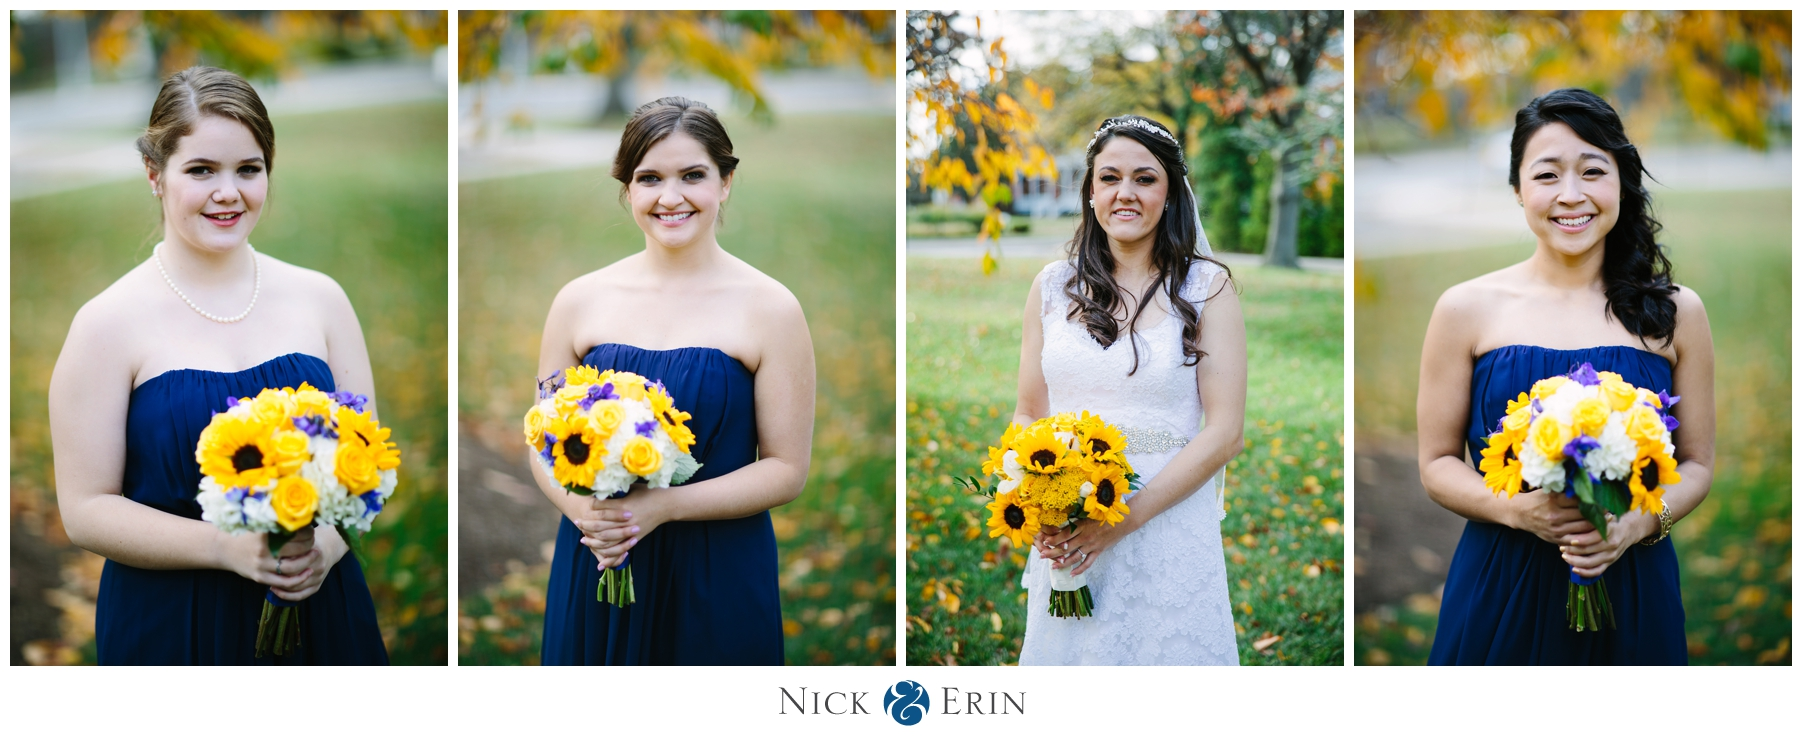 Donner_Photography_Fort Myer Wedding_Katie & Will_0028